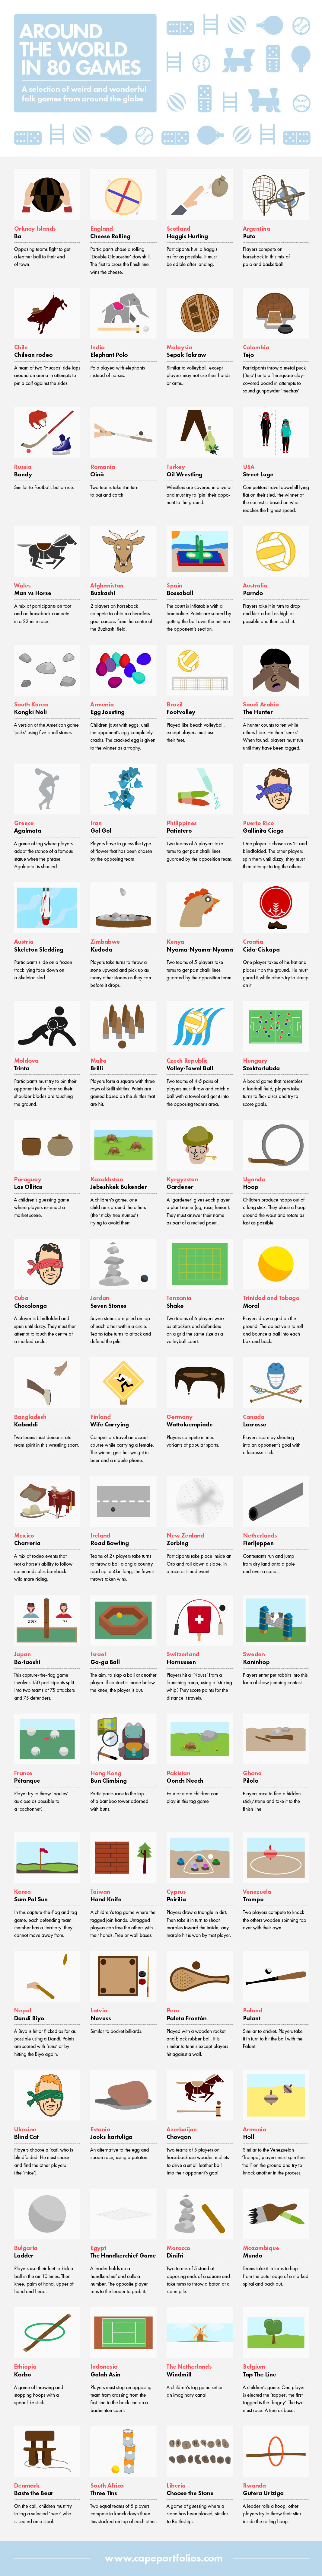 Infographic: Around The World In 80 Games